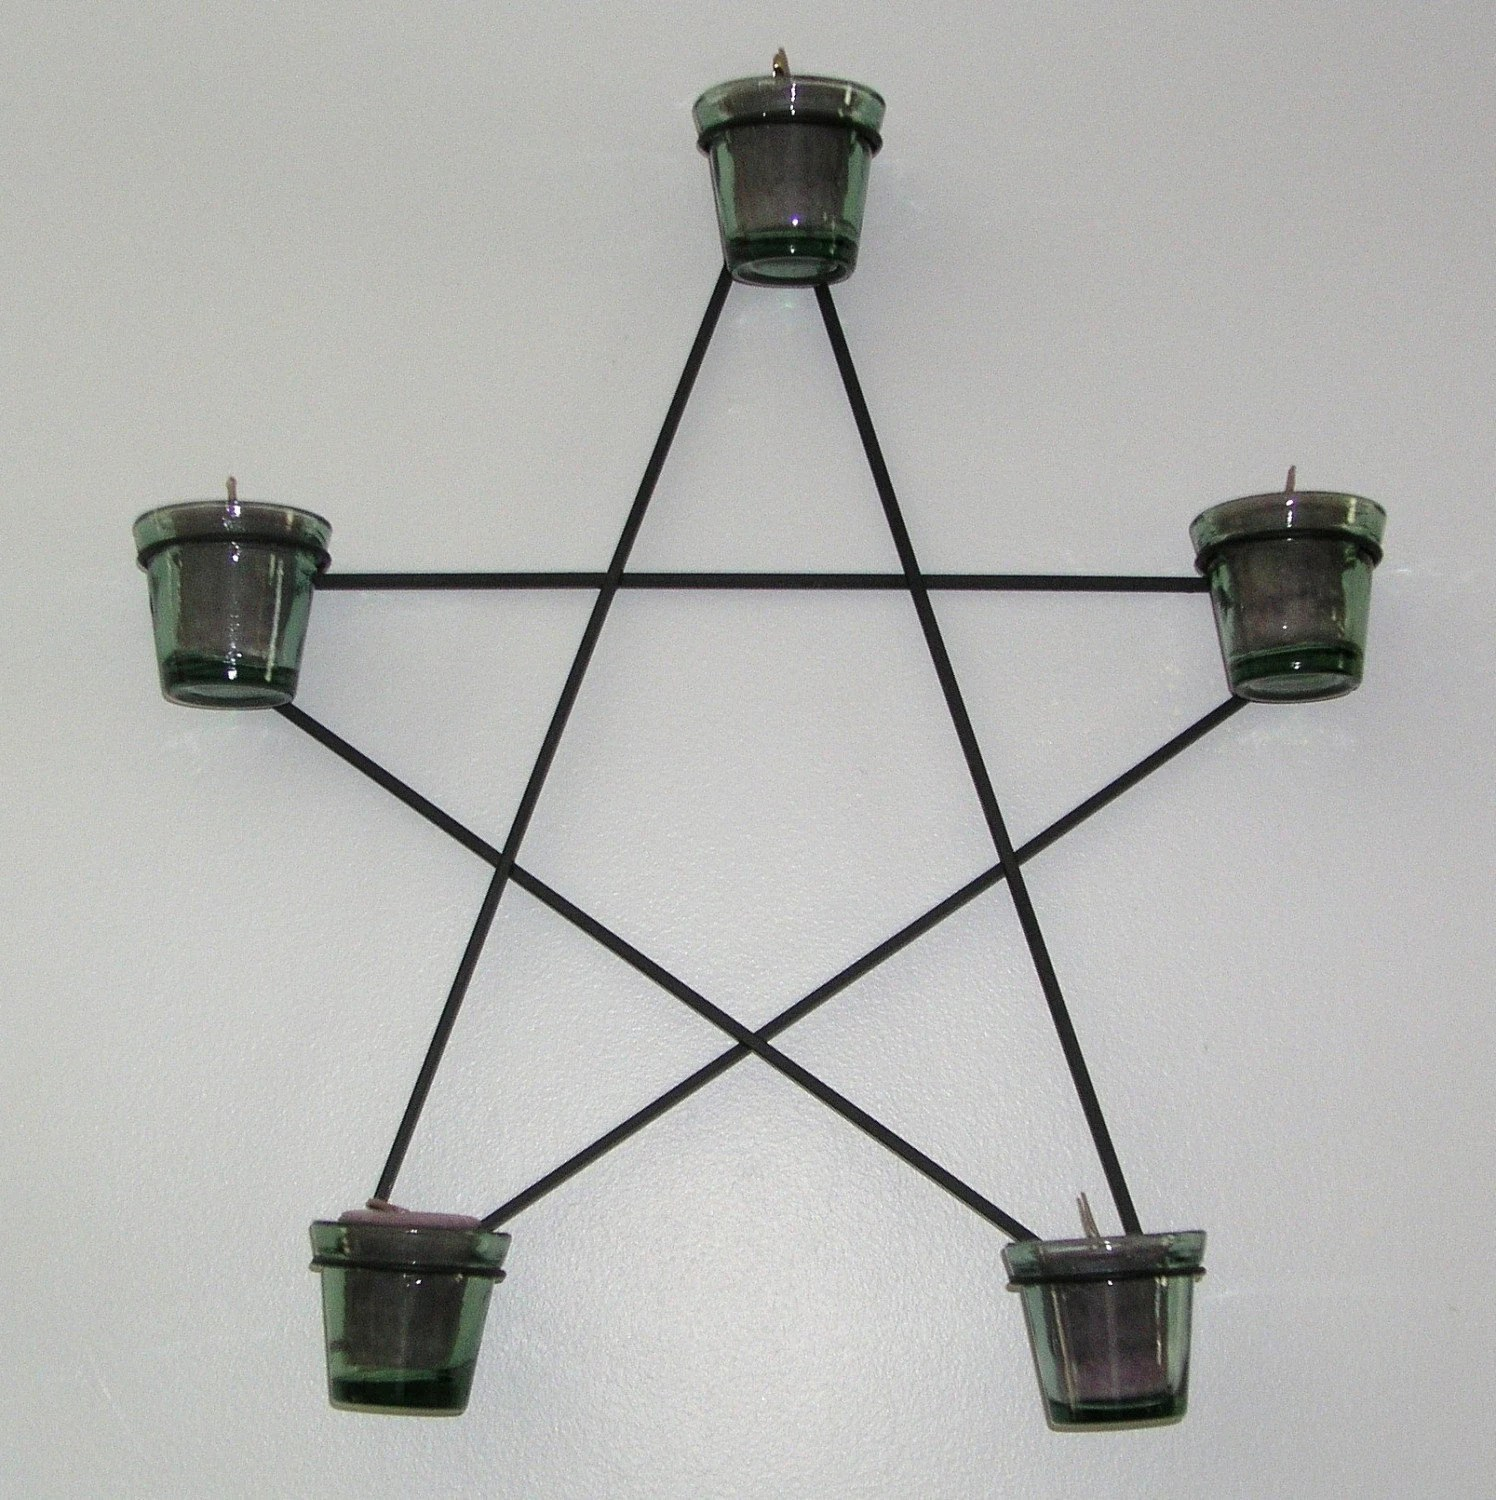 Black Wrought Iron Wall Mounted Candle Holder Star on Wall Mounted Candle Holder id=54004